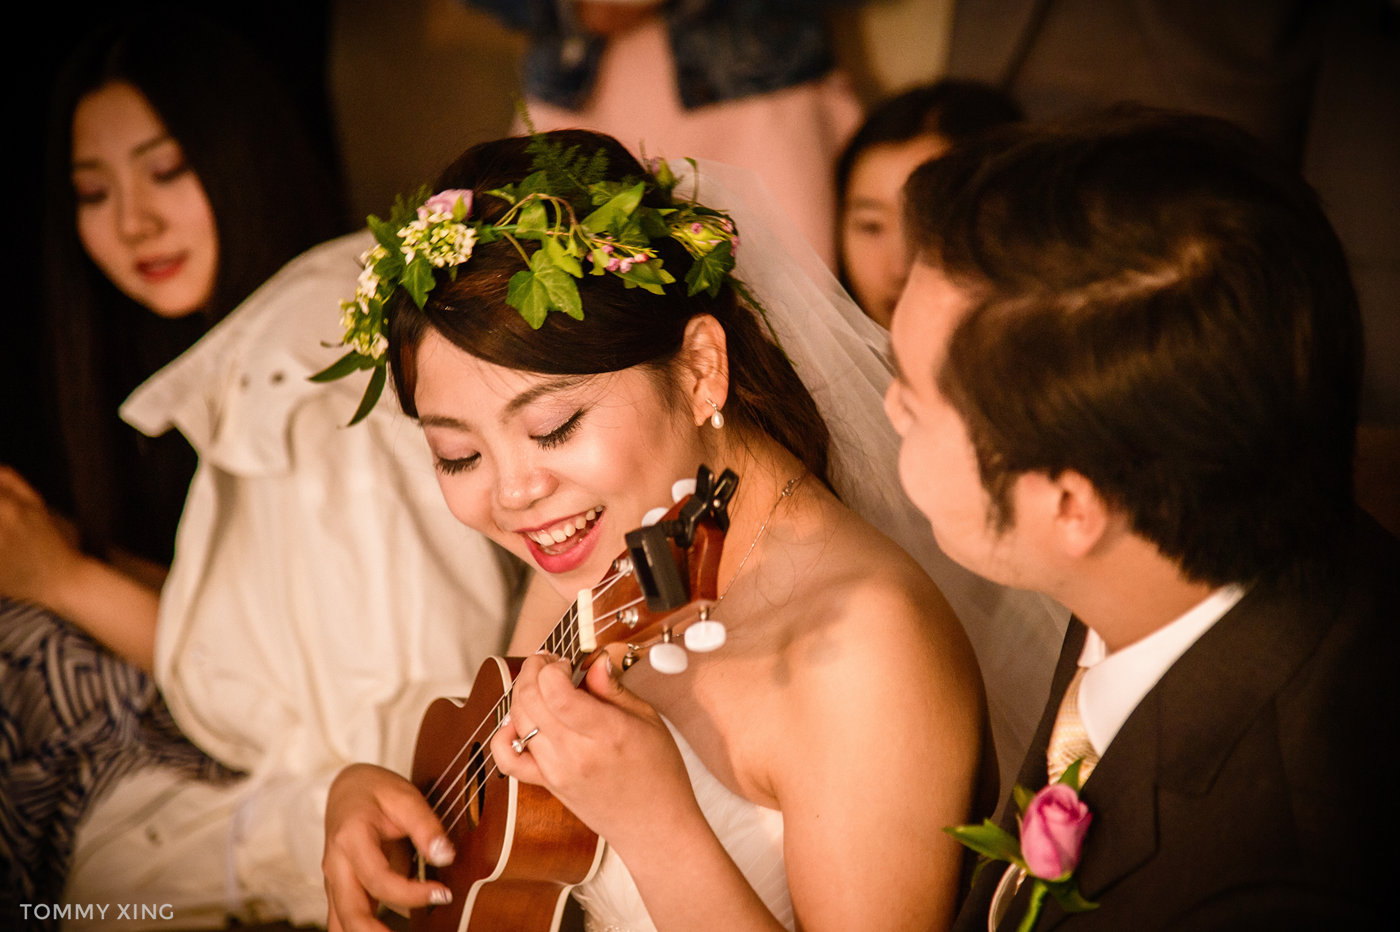 Seattle Wedding and pre wedding Los Angeles Tommy Xing Photography 西雅图洛杉矶旧金山婚礼婚纱照摄影师 151.jpg